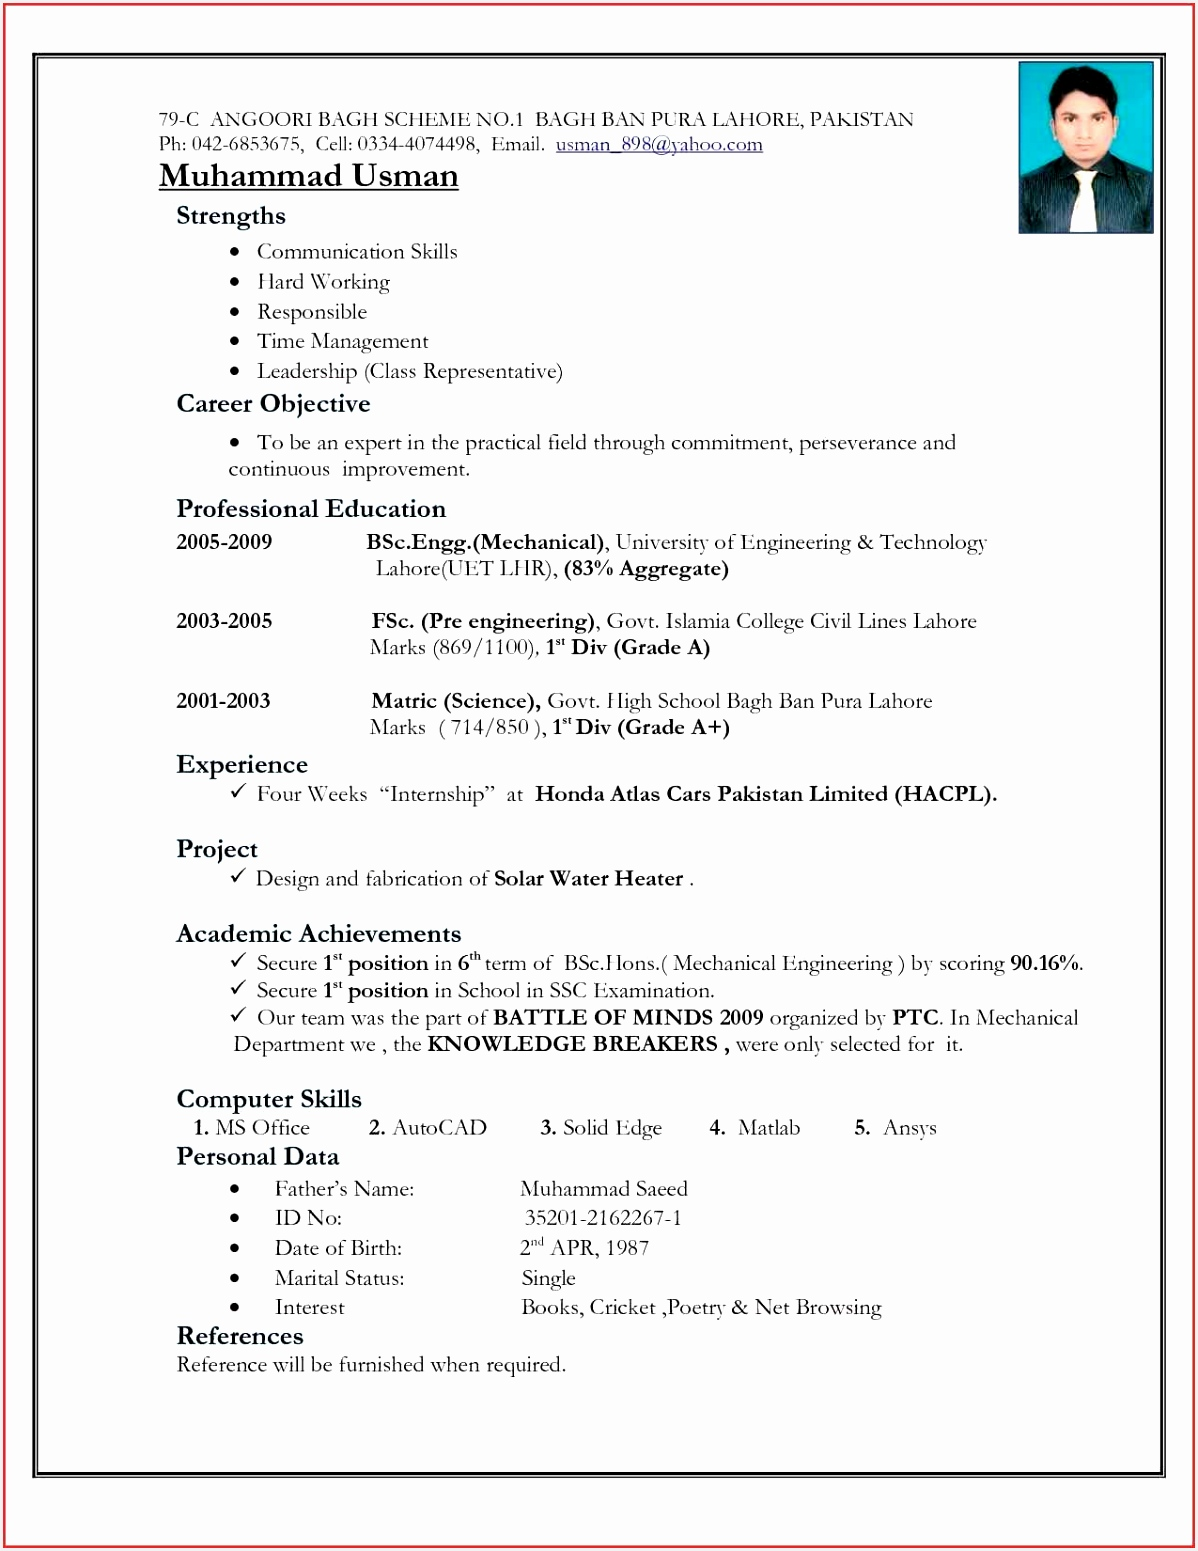 Resumes format for Freshers N8daq Luxury Good Resume formats Best Of Best Resume format for Freshers Free Of Resumes format for Freshers Lkwbn Fresh Resume format Sample – Resume Template Odt – Kidsafefilms